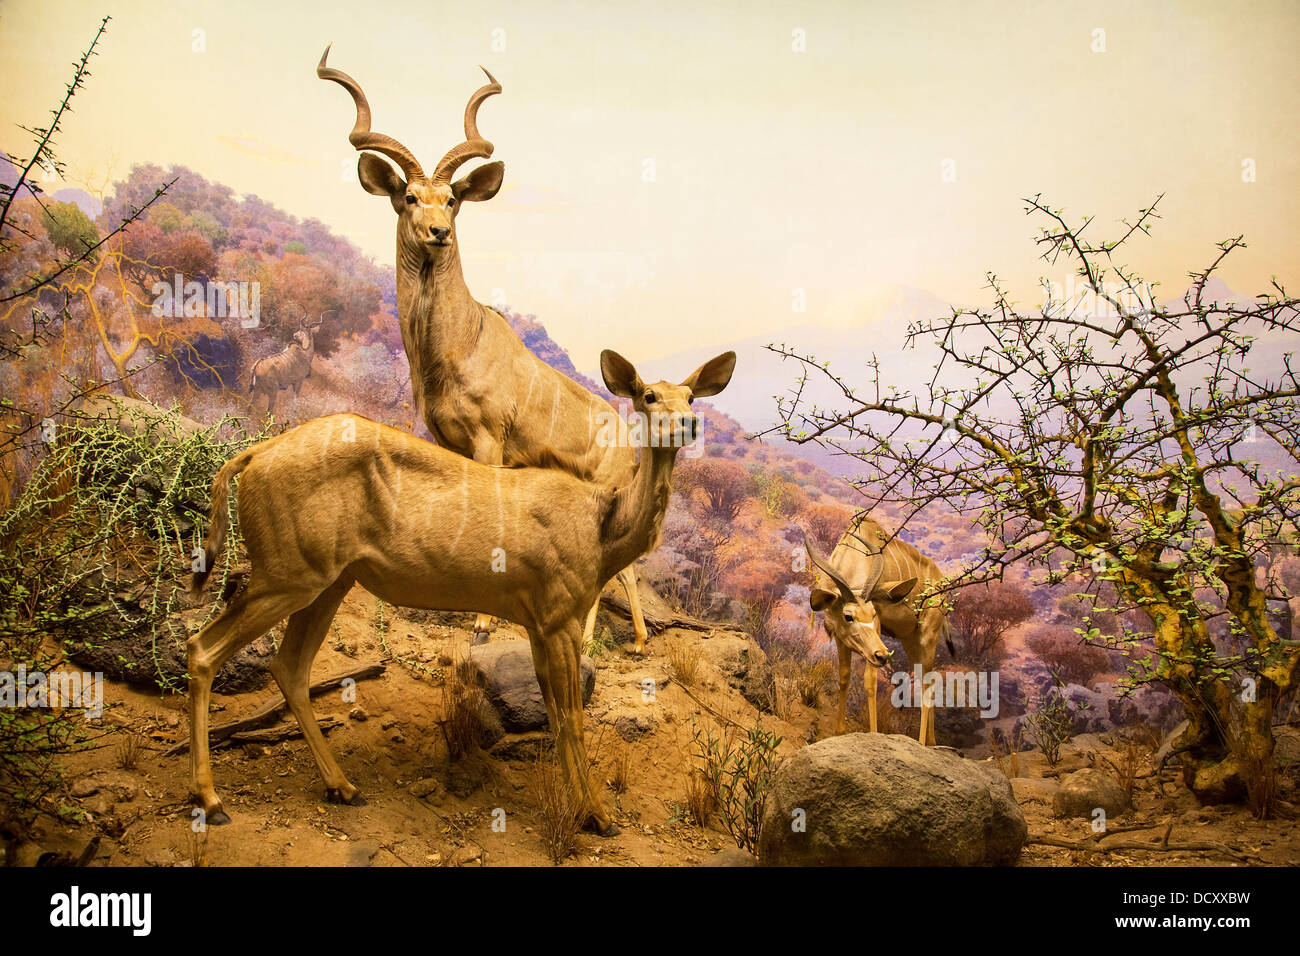 New York, Museum Of Natural History Stockbild